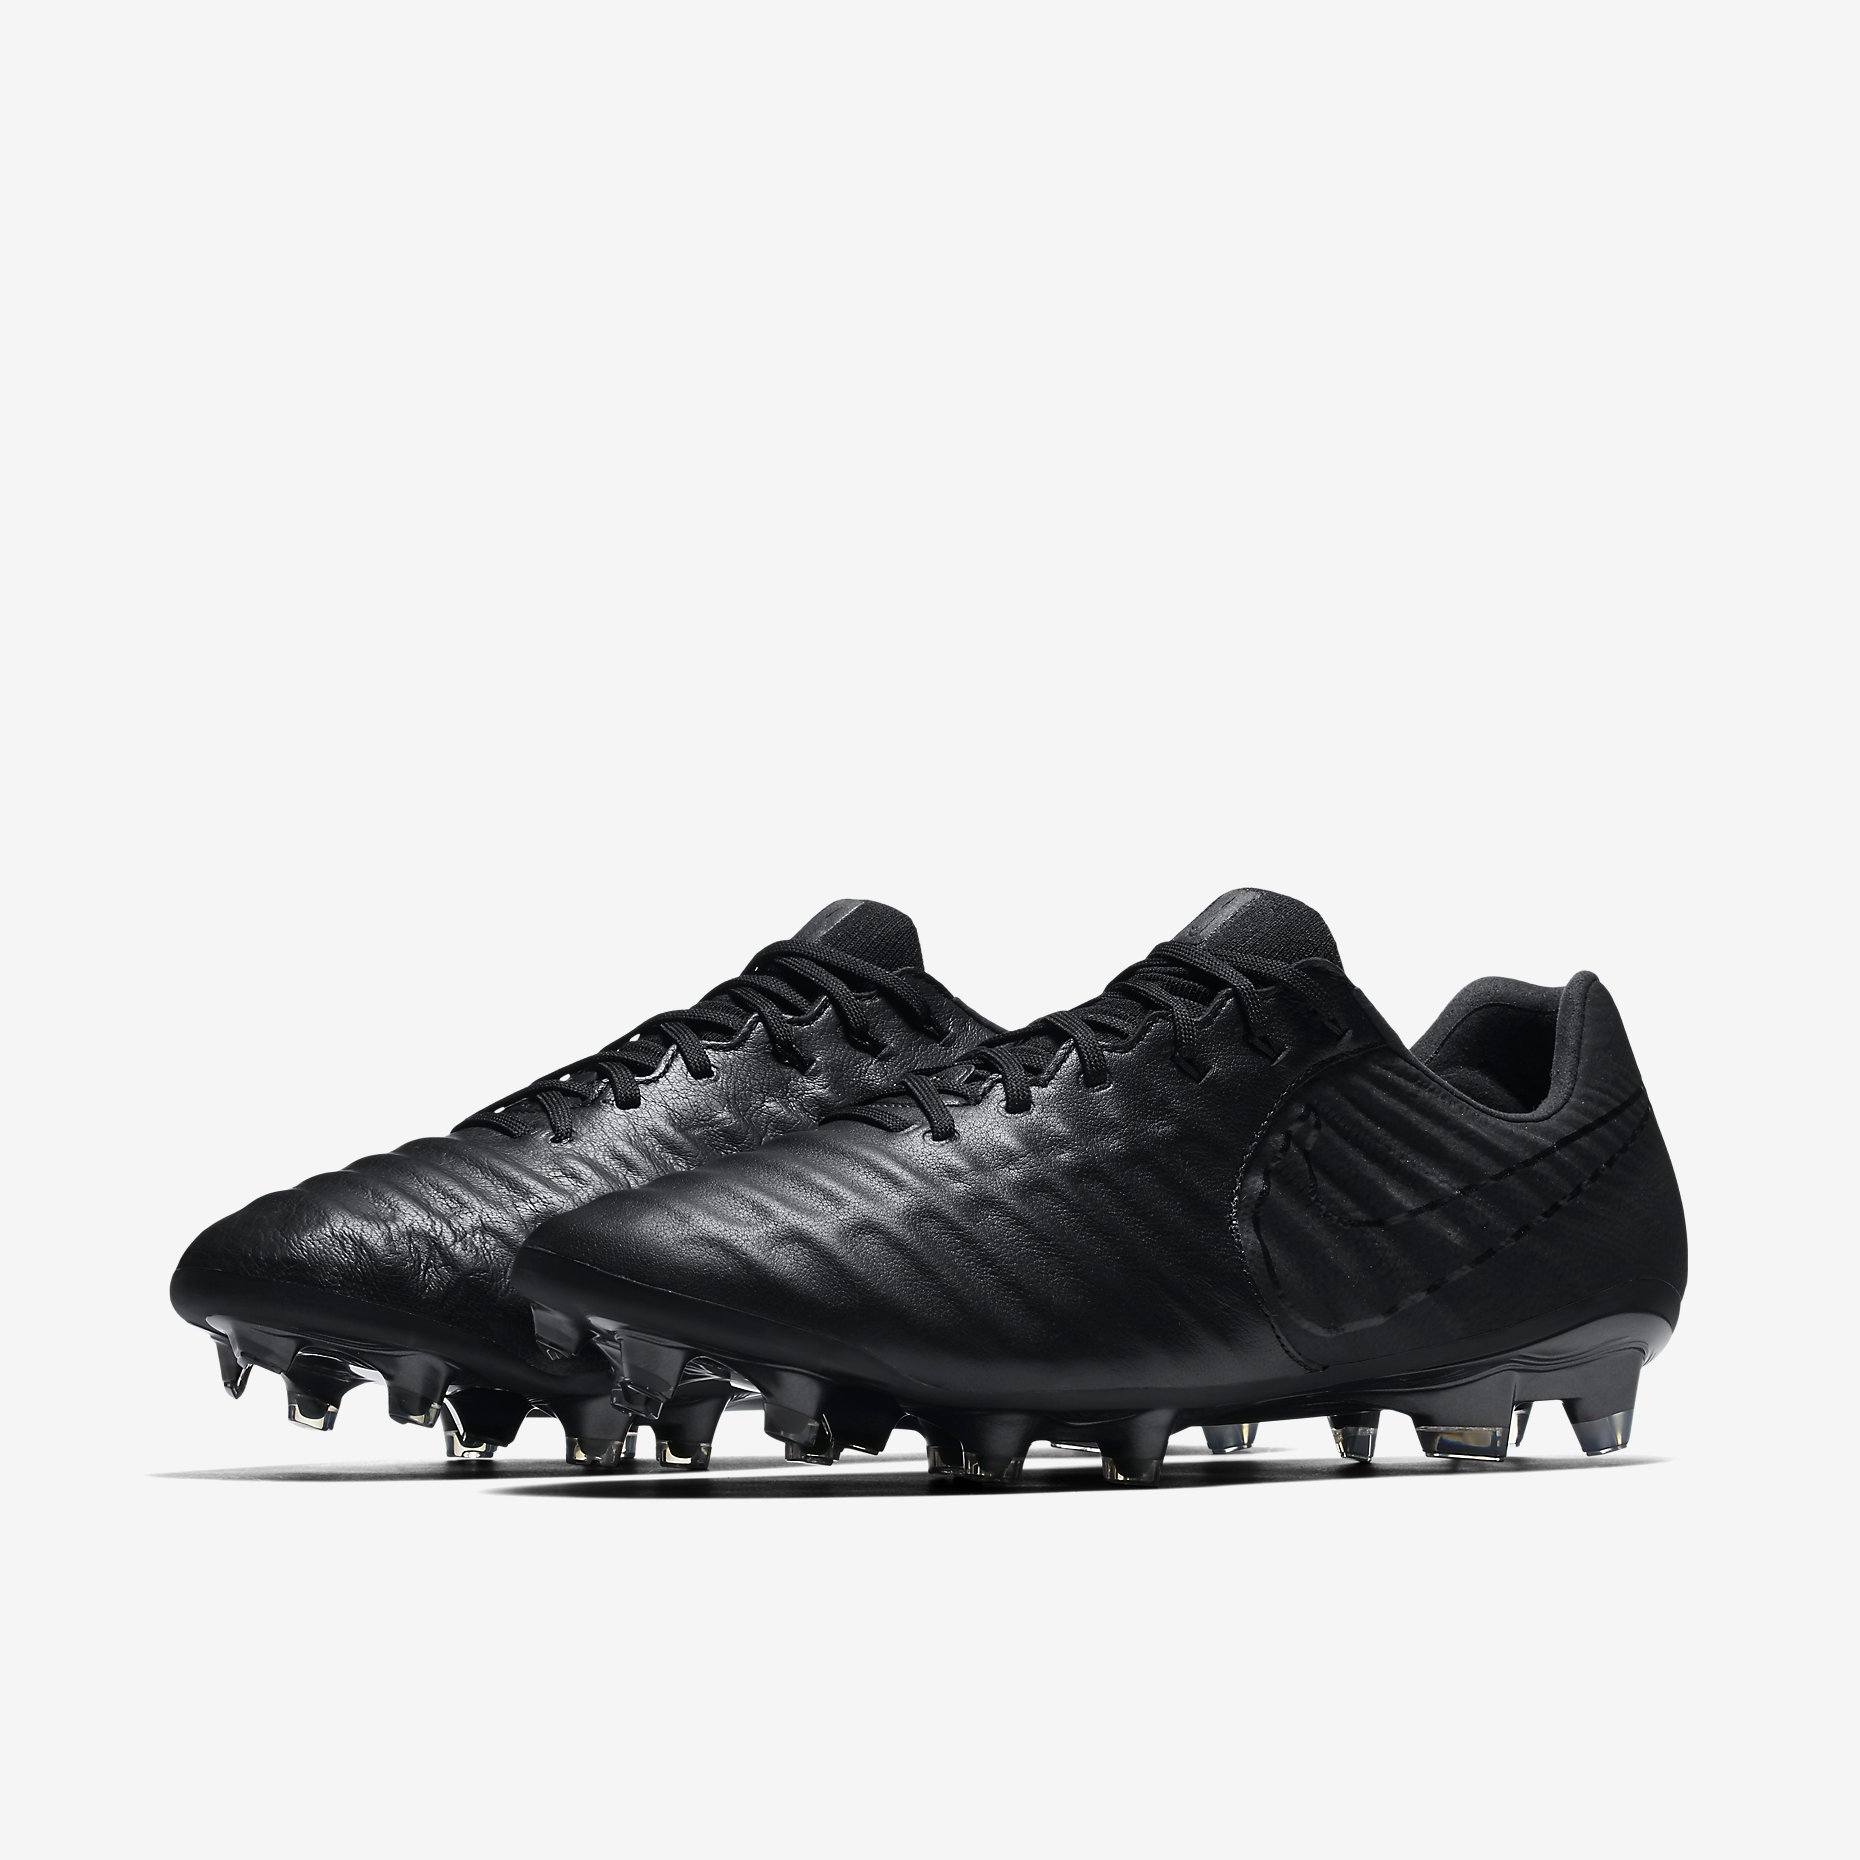 the latest d7ec1 045b1 Nike Tiempo Legend VII FG Academy Pack - Black / Black ...